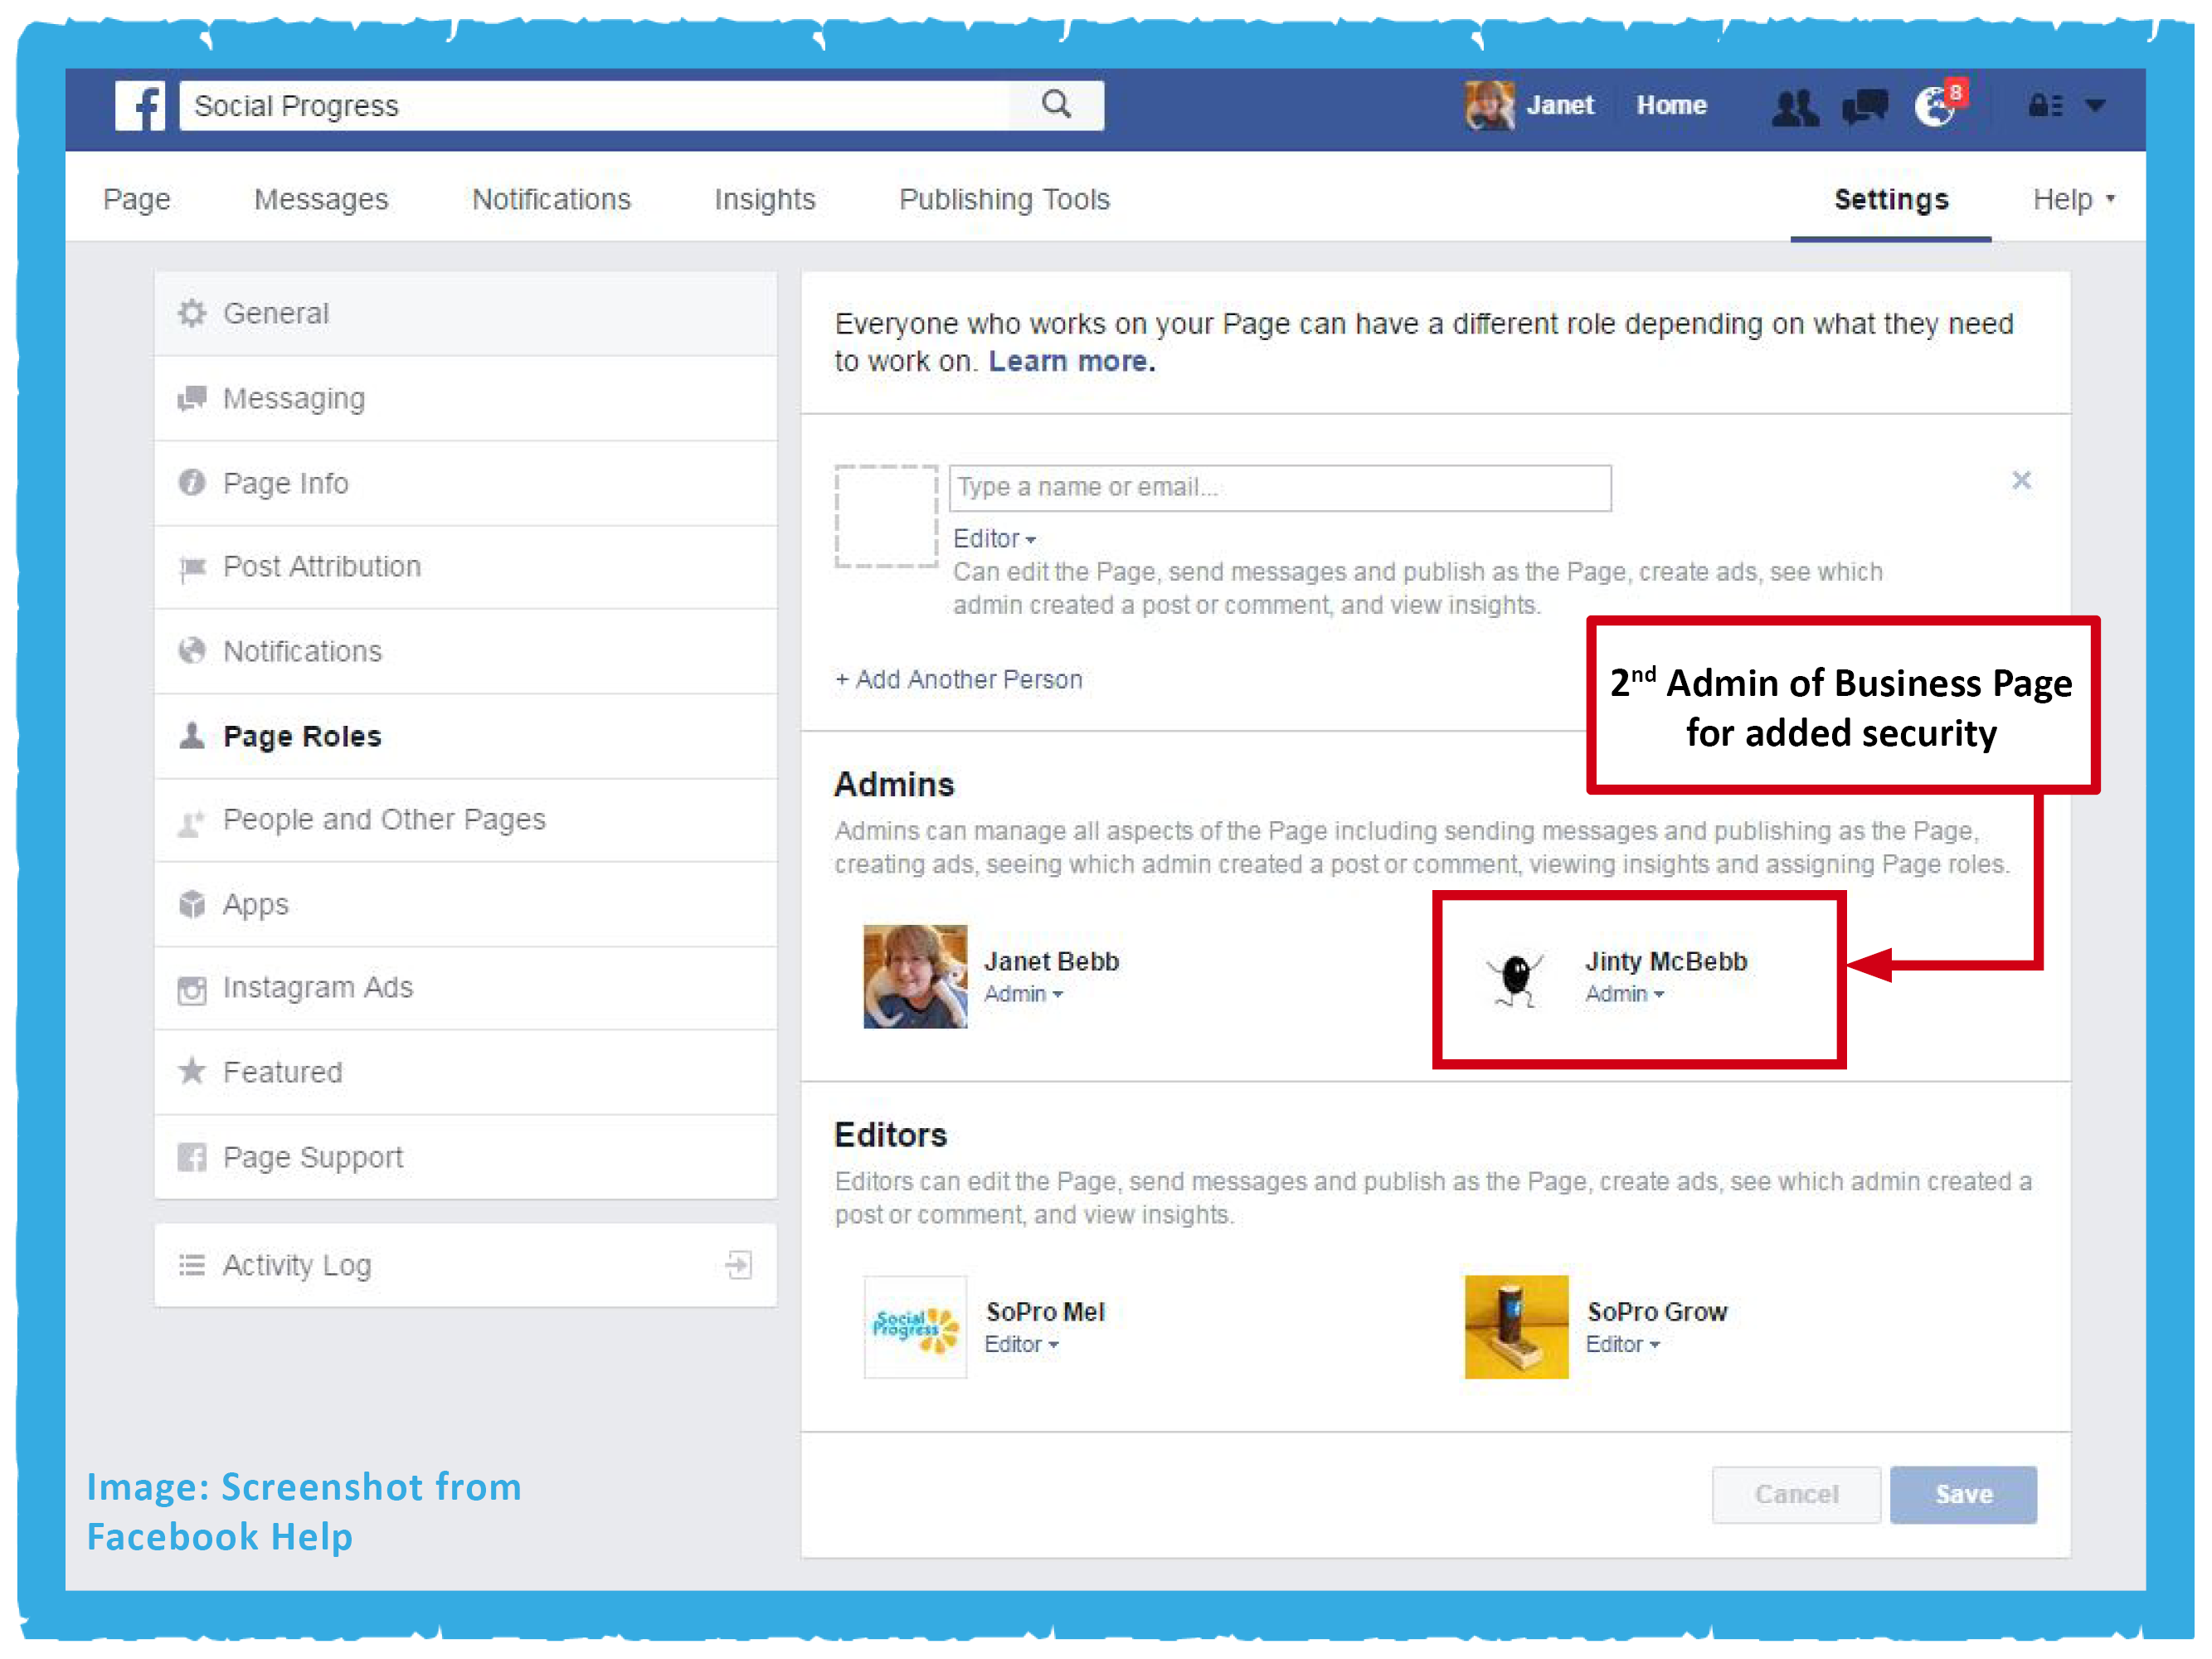 Social Progress - SoPro Blog - The Importance of Two Facebook Admins